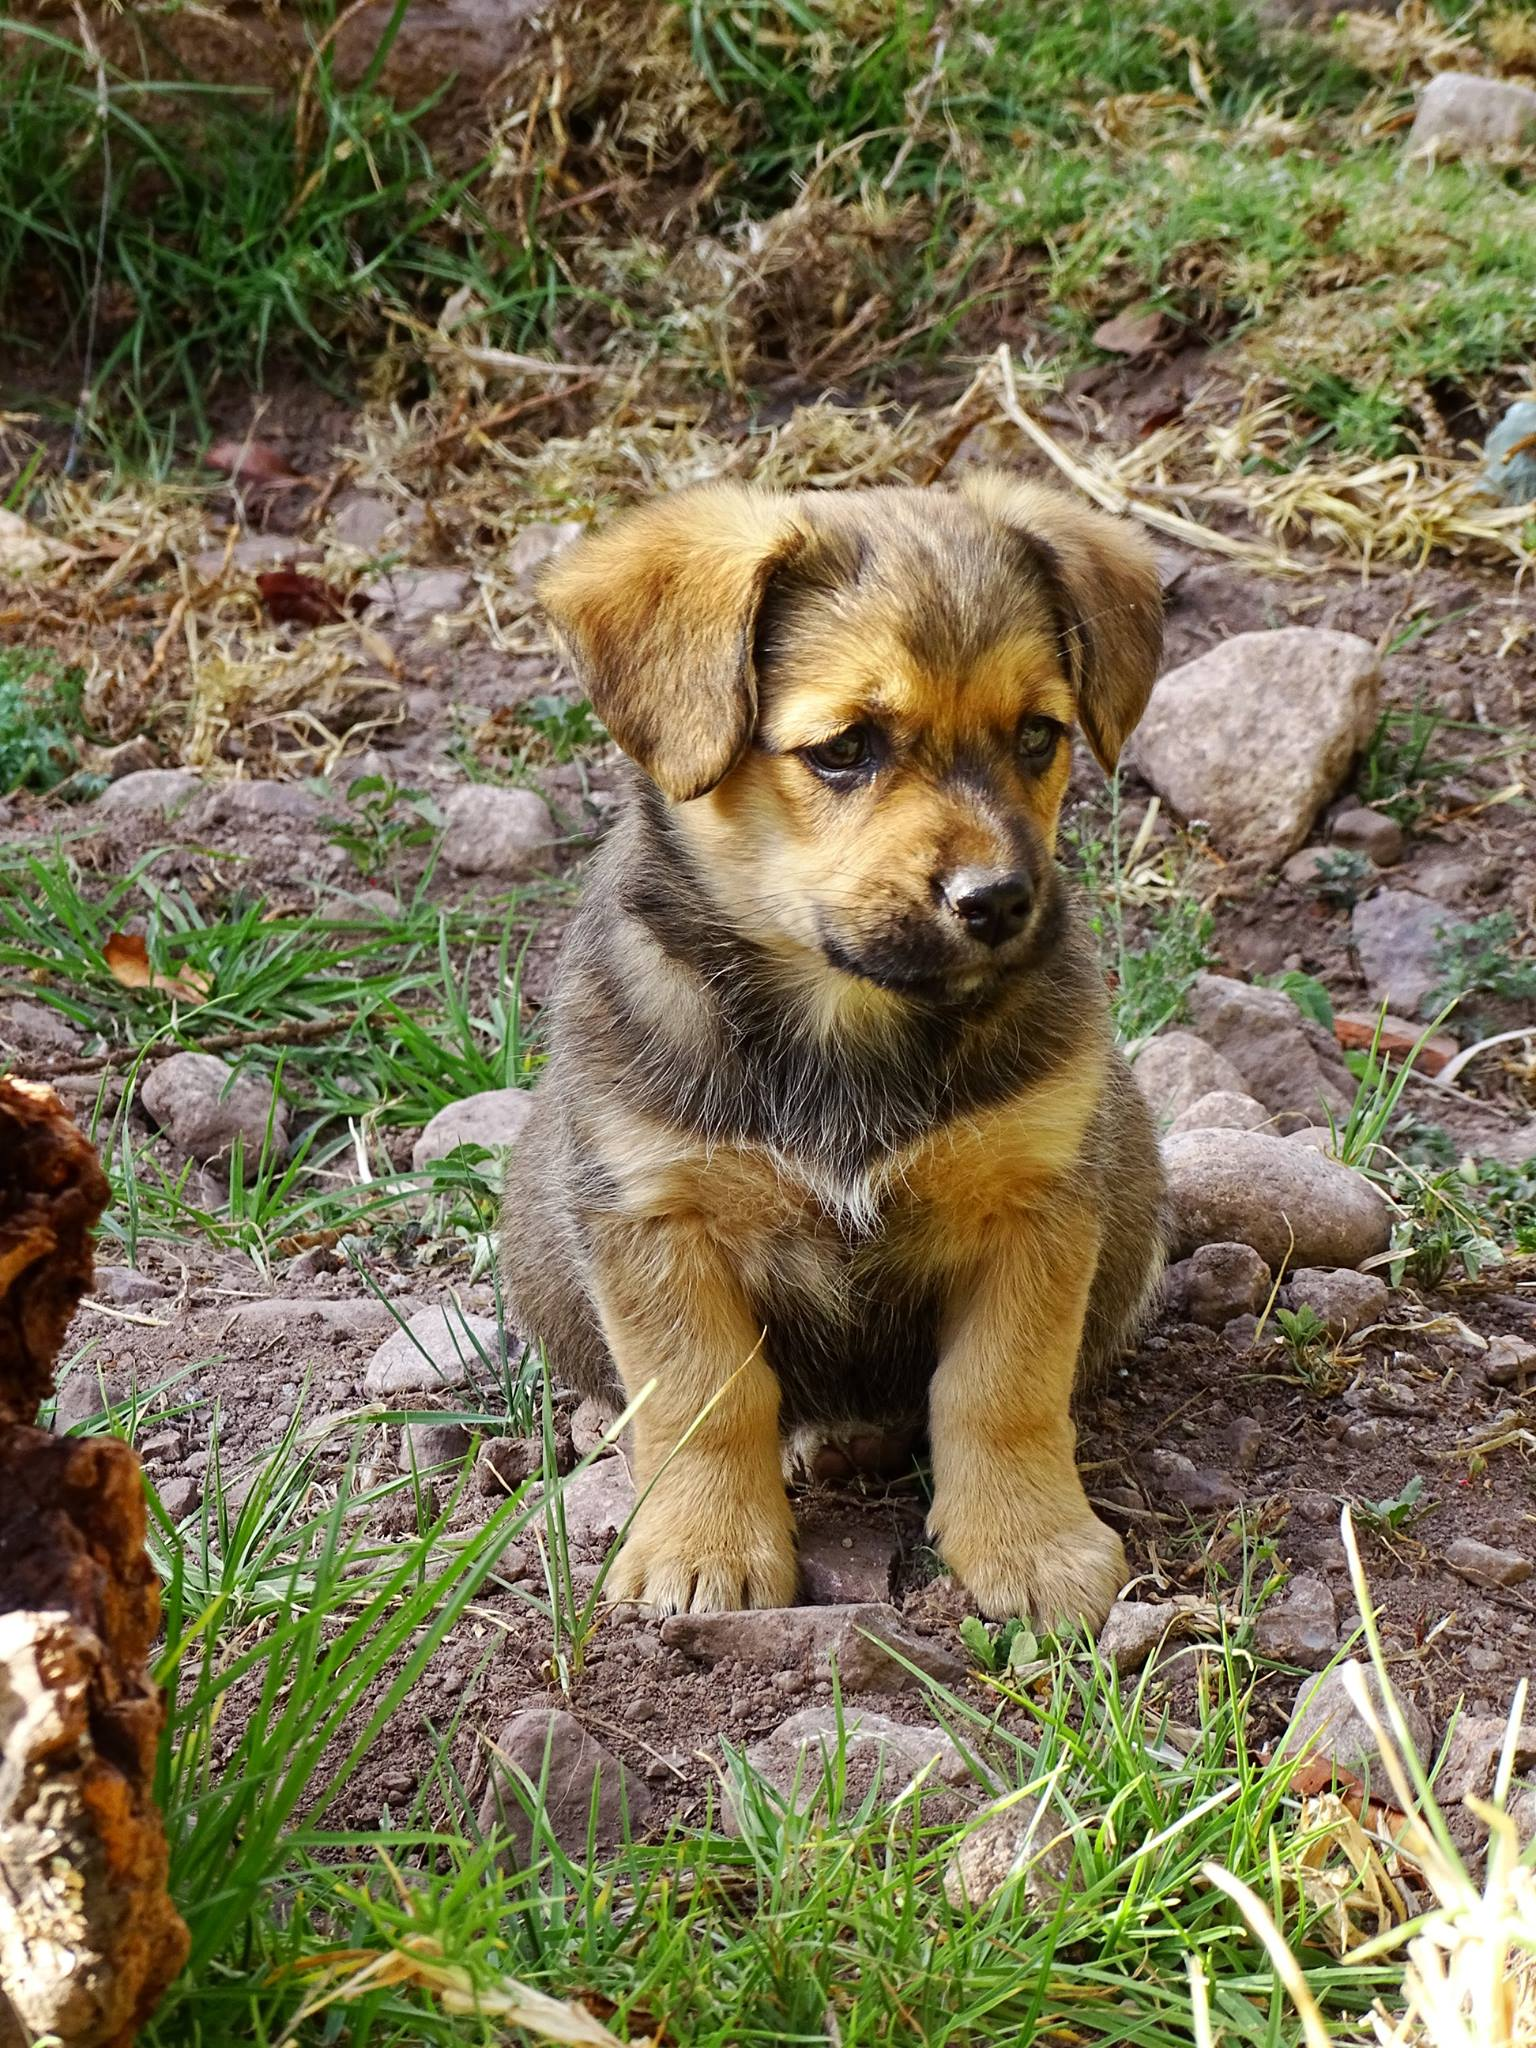 T´ika (Flower in Quechua), the baby girl.